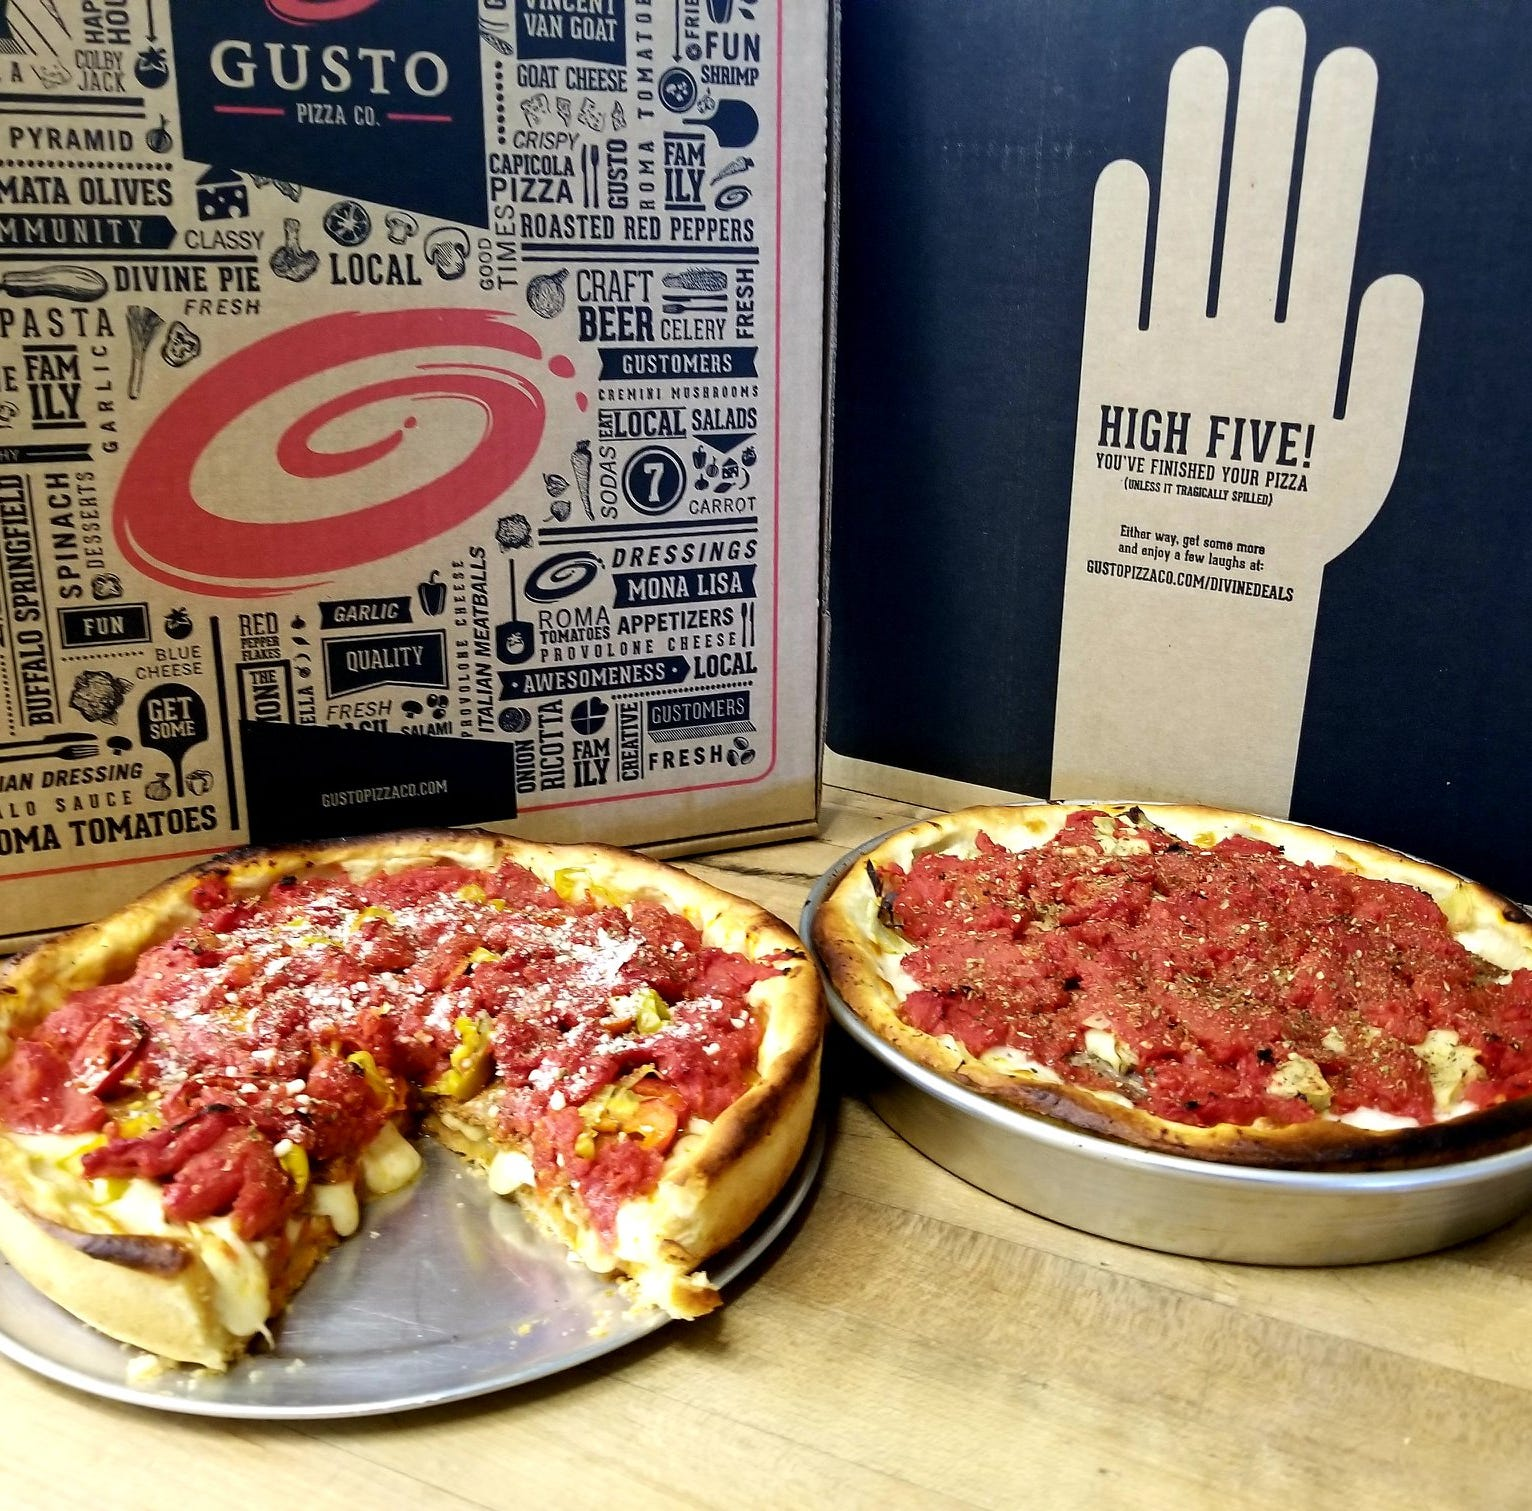 This popular pizzeria in the metro has unleashed a new Chicago-style deep dish pizza menu